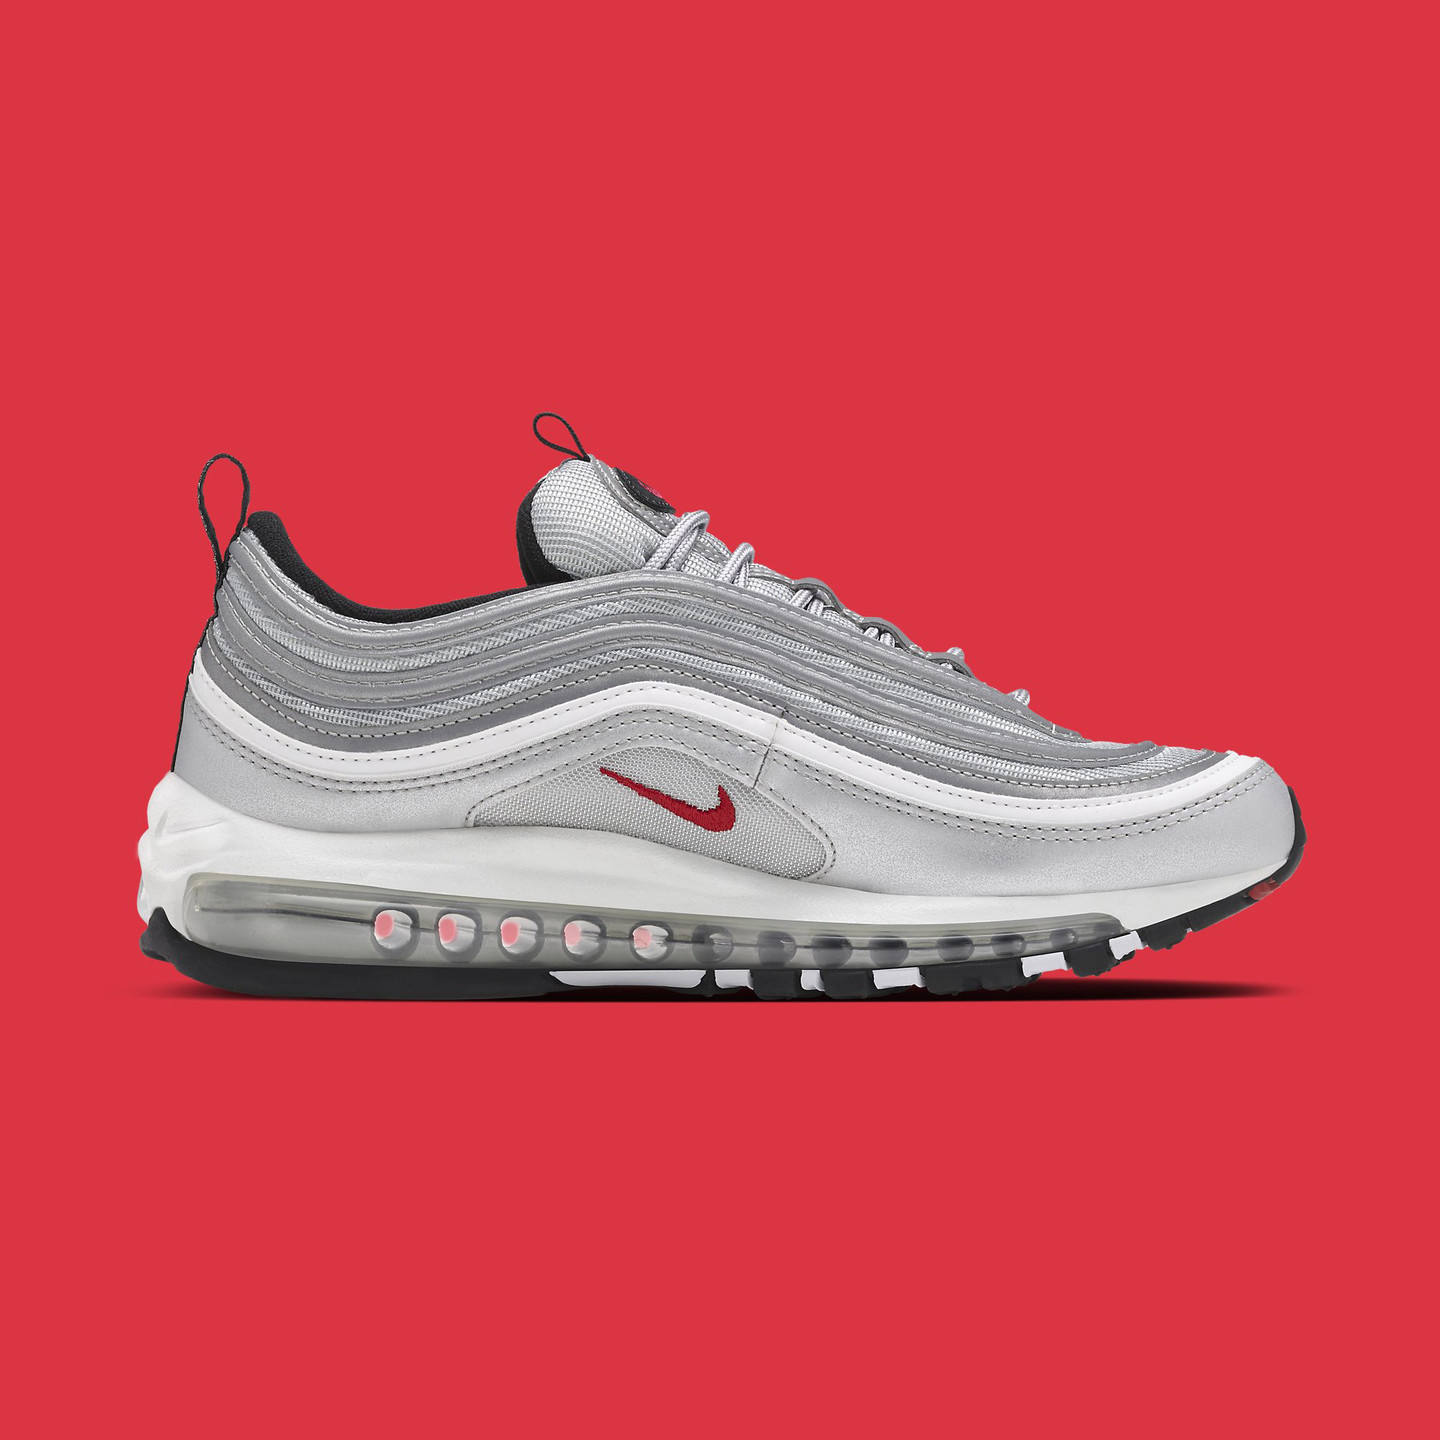 Nike Air Max 97 OG QS 'Silver Bullet' Metallic Silver / Varsity Red 884421-001